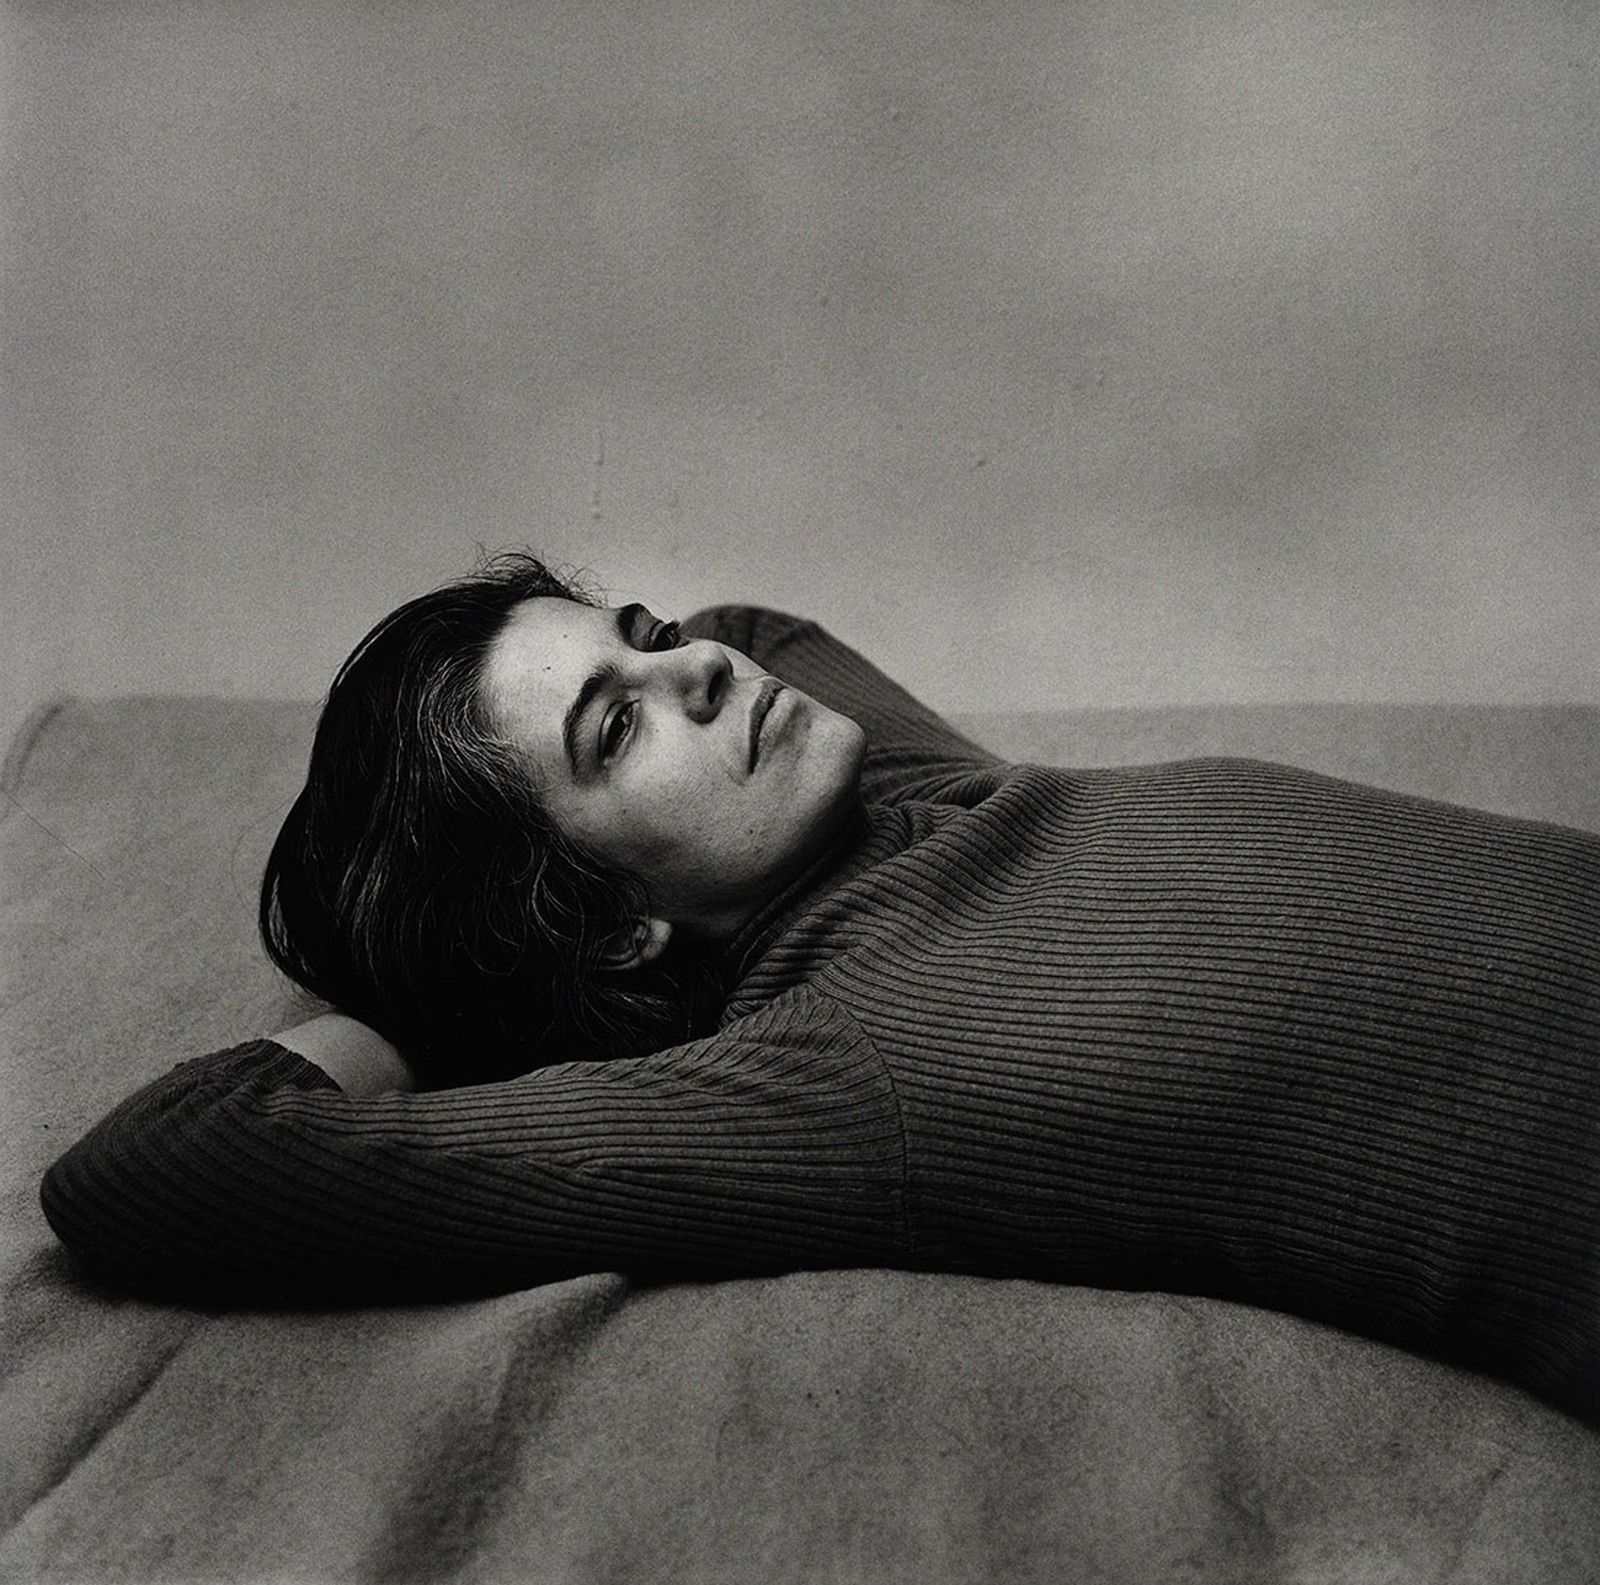 Susan Sontag 1975 Peter Hujar Tirage gélatino-argentique, The Morgan Library & Museum , achat en 2013 grâce au Charina Endowment Fund © Peter Hujar Archive, LLC, courtesy Pace/MacGill Gallery, New York and Fraenkel Gallery, San Francisco